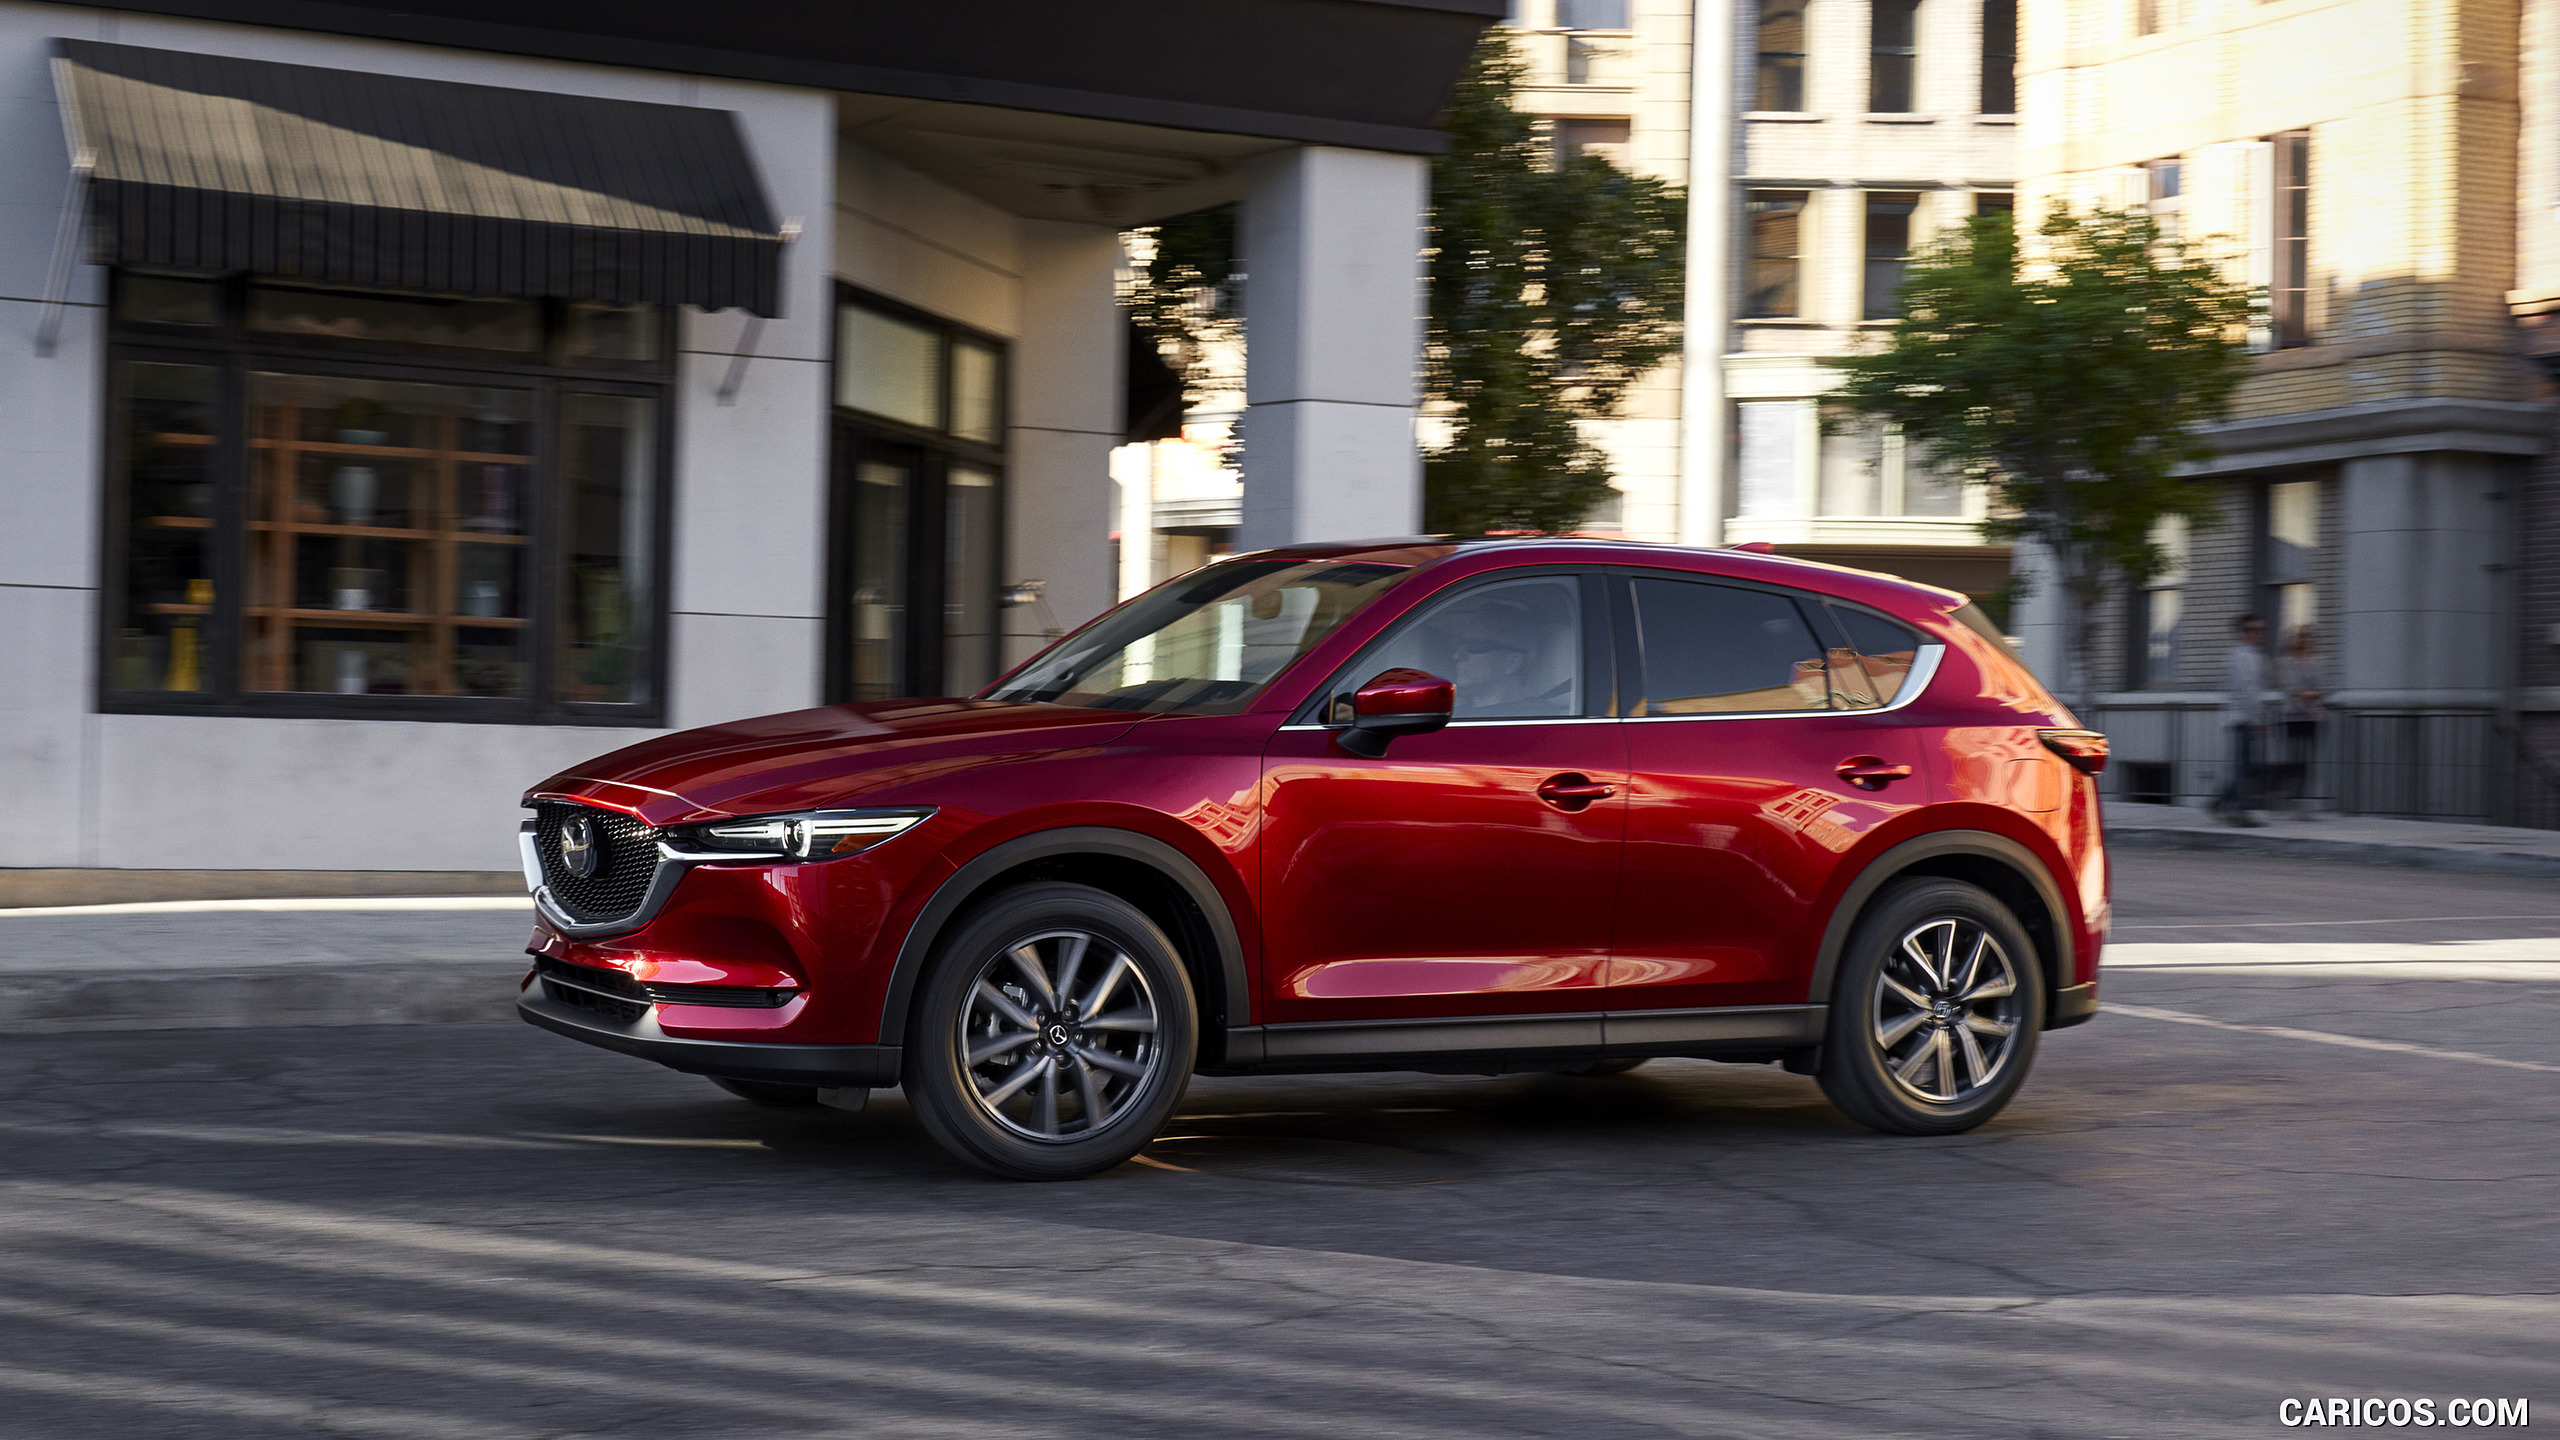 2560x1440 - Mazda CX-5 Wallpapers 4